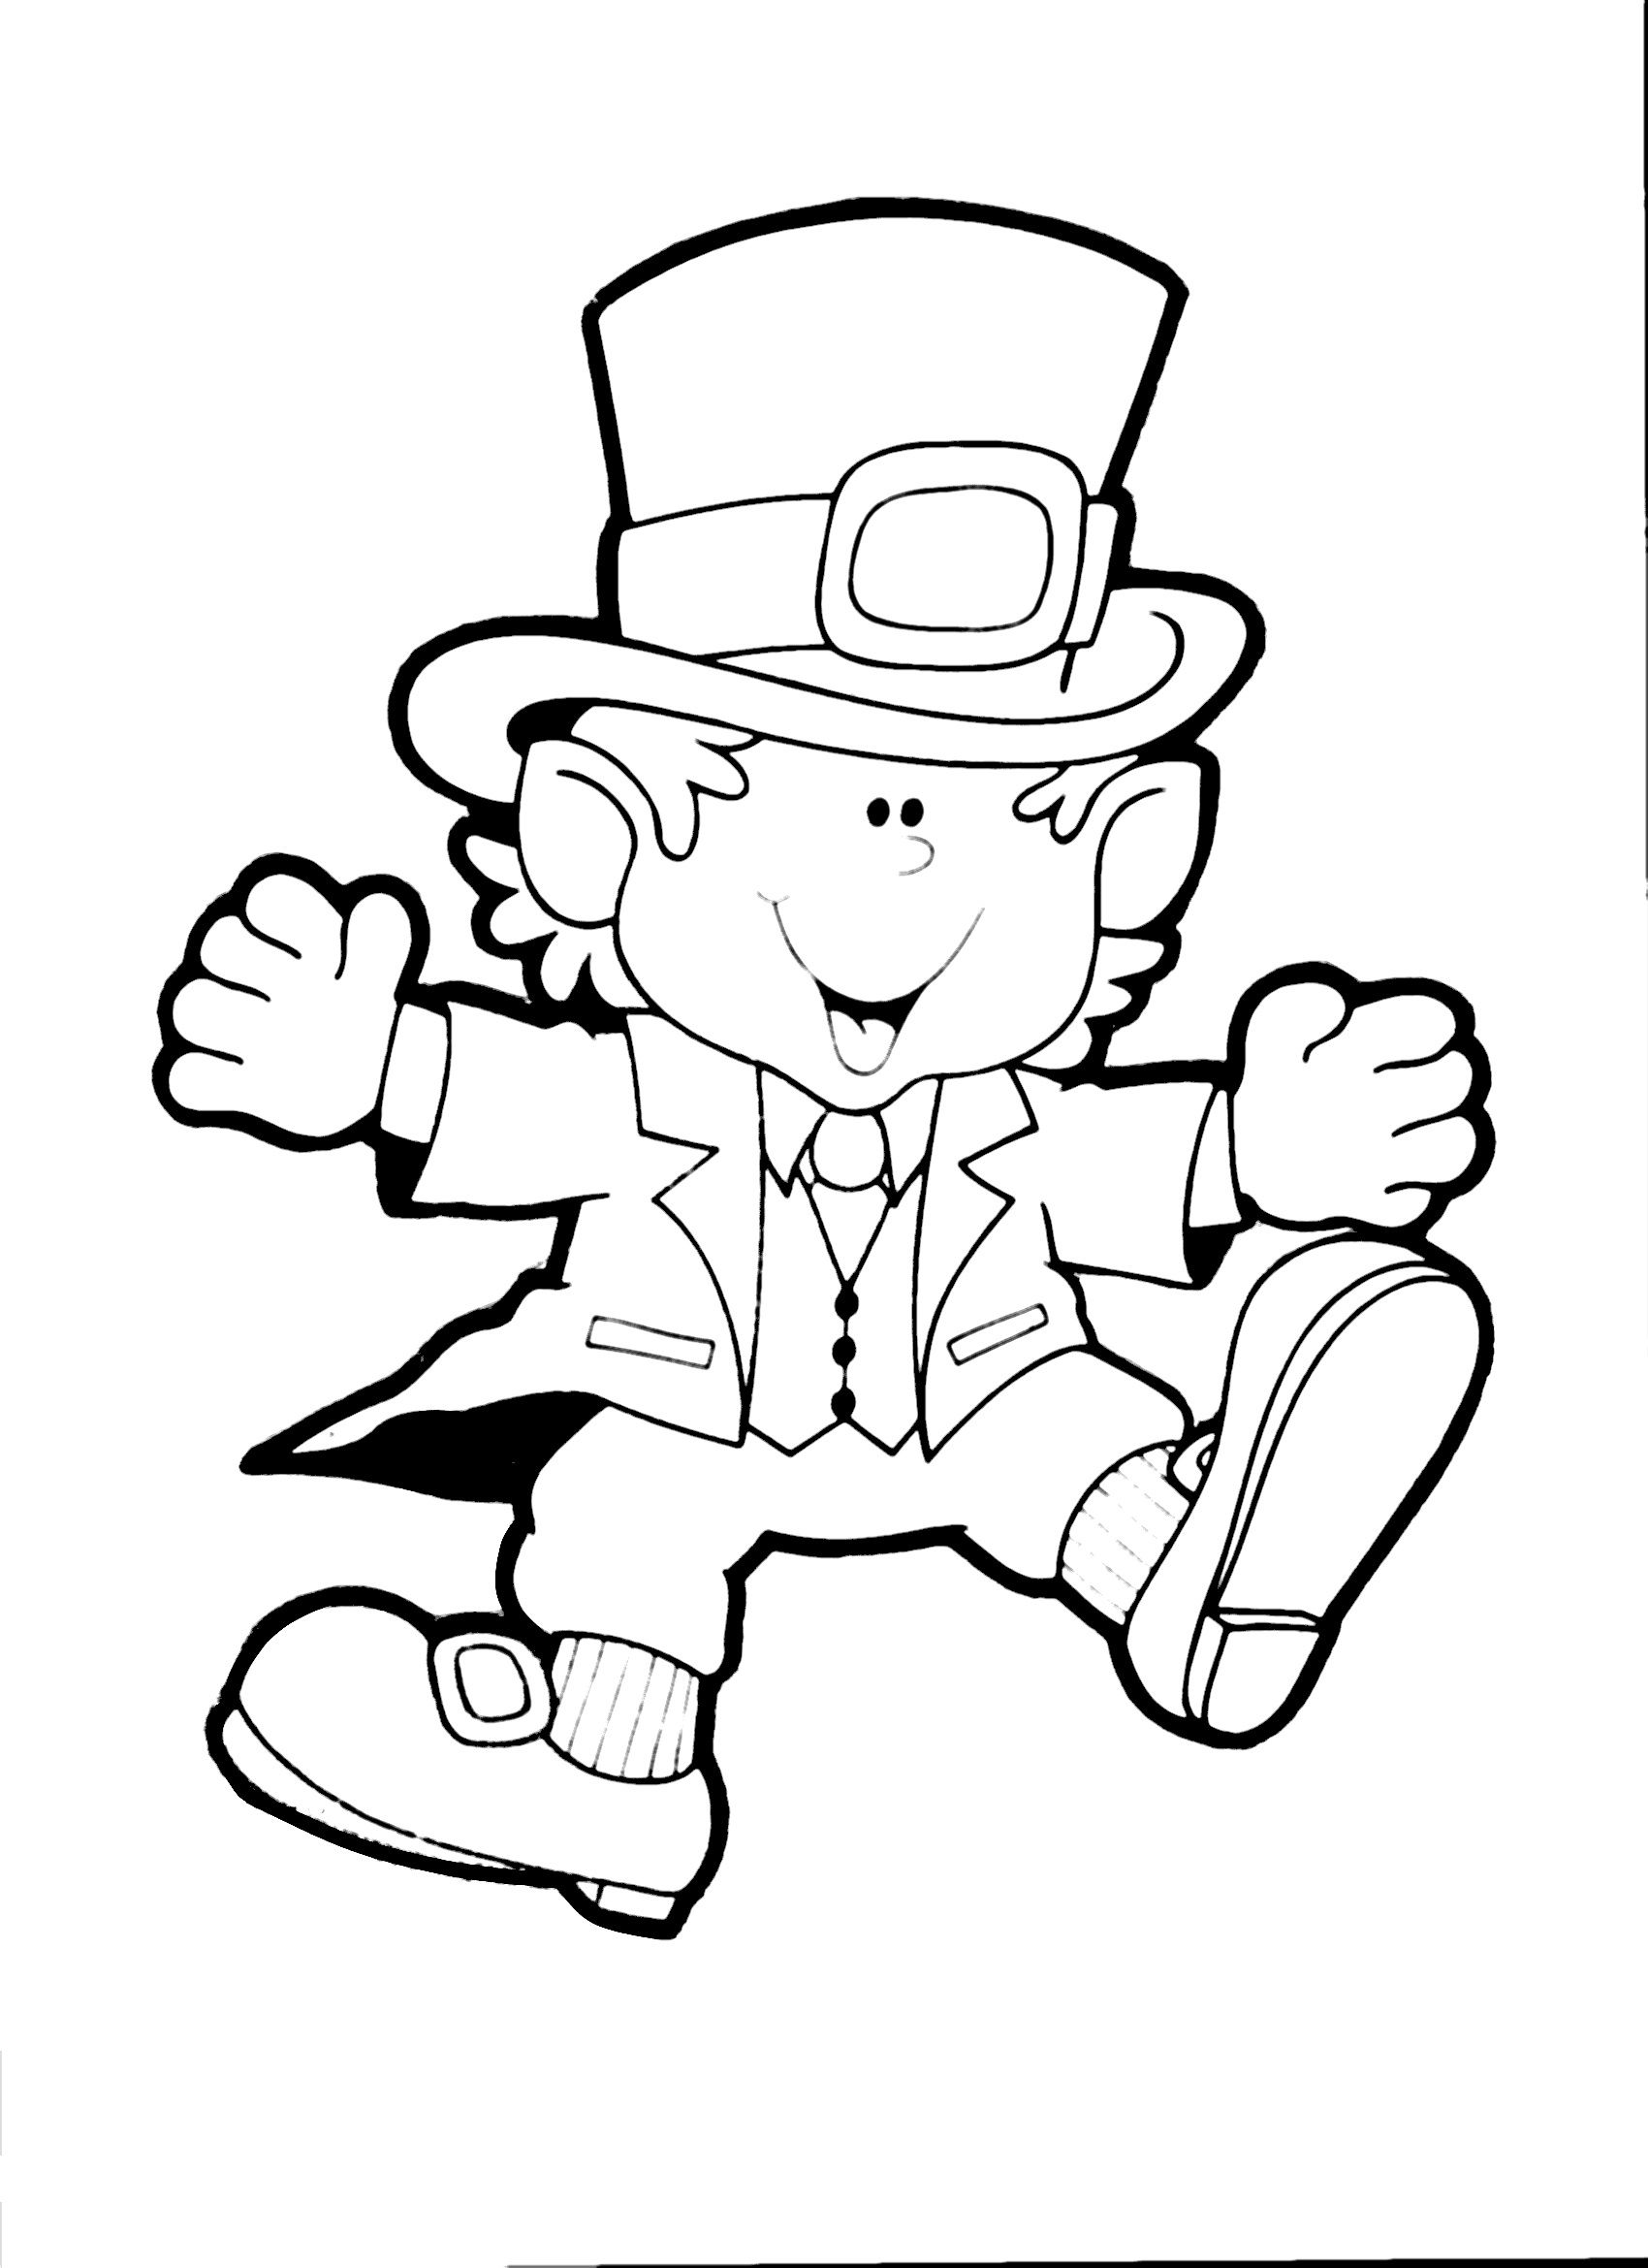 St. Patrick's Day Coloring Pages St patrick day